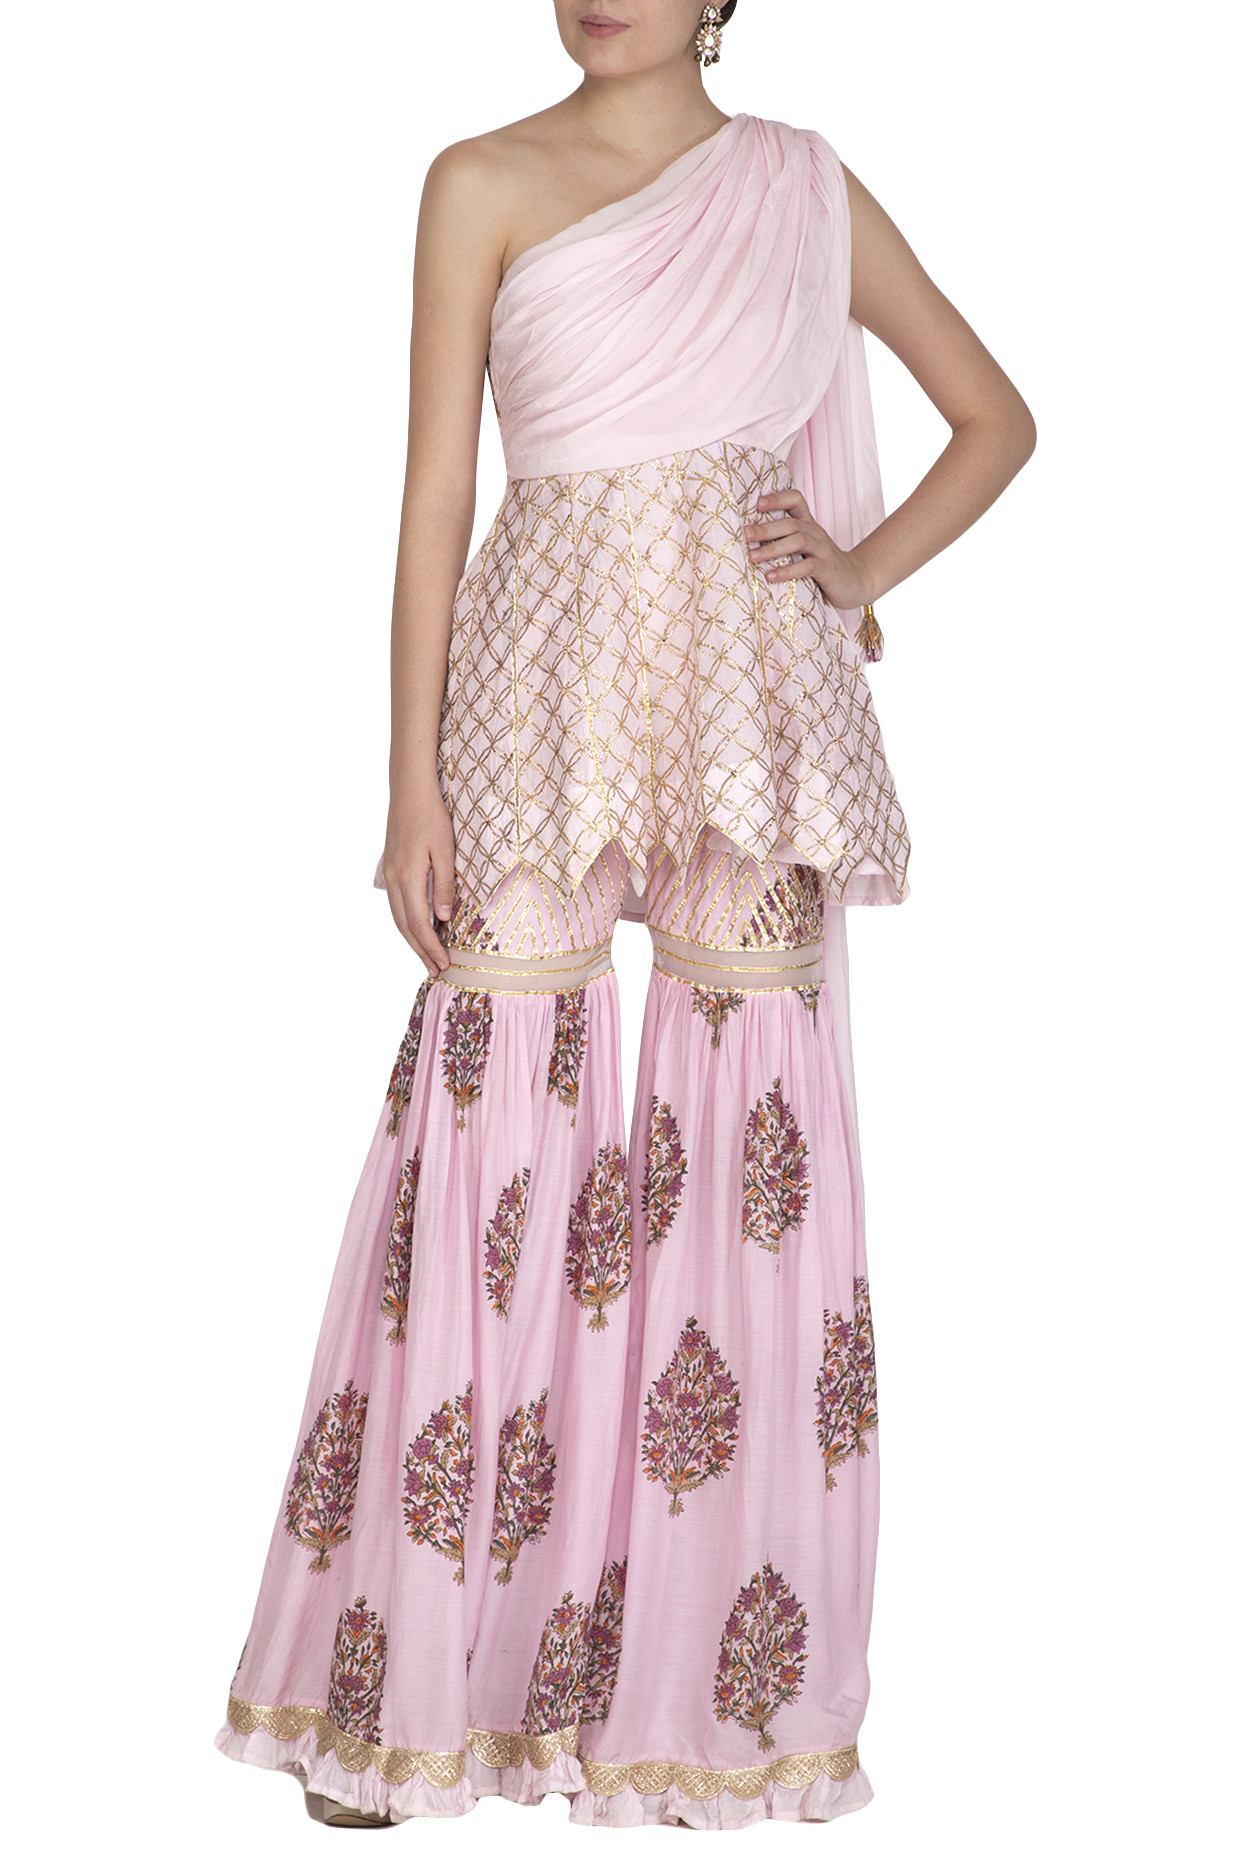 Blush Pink Printed Sharara Set by Yuvvrani Jaipur